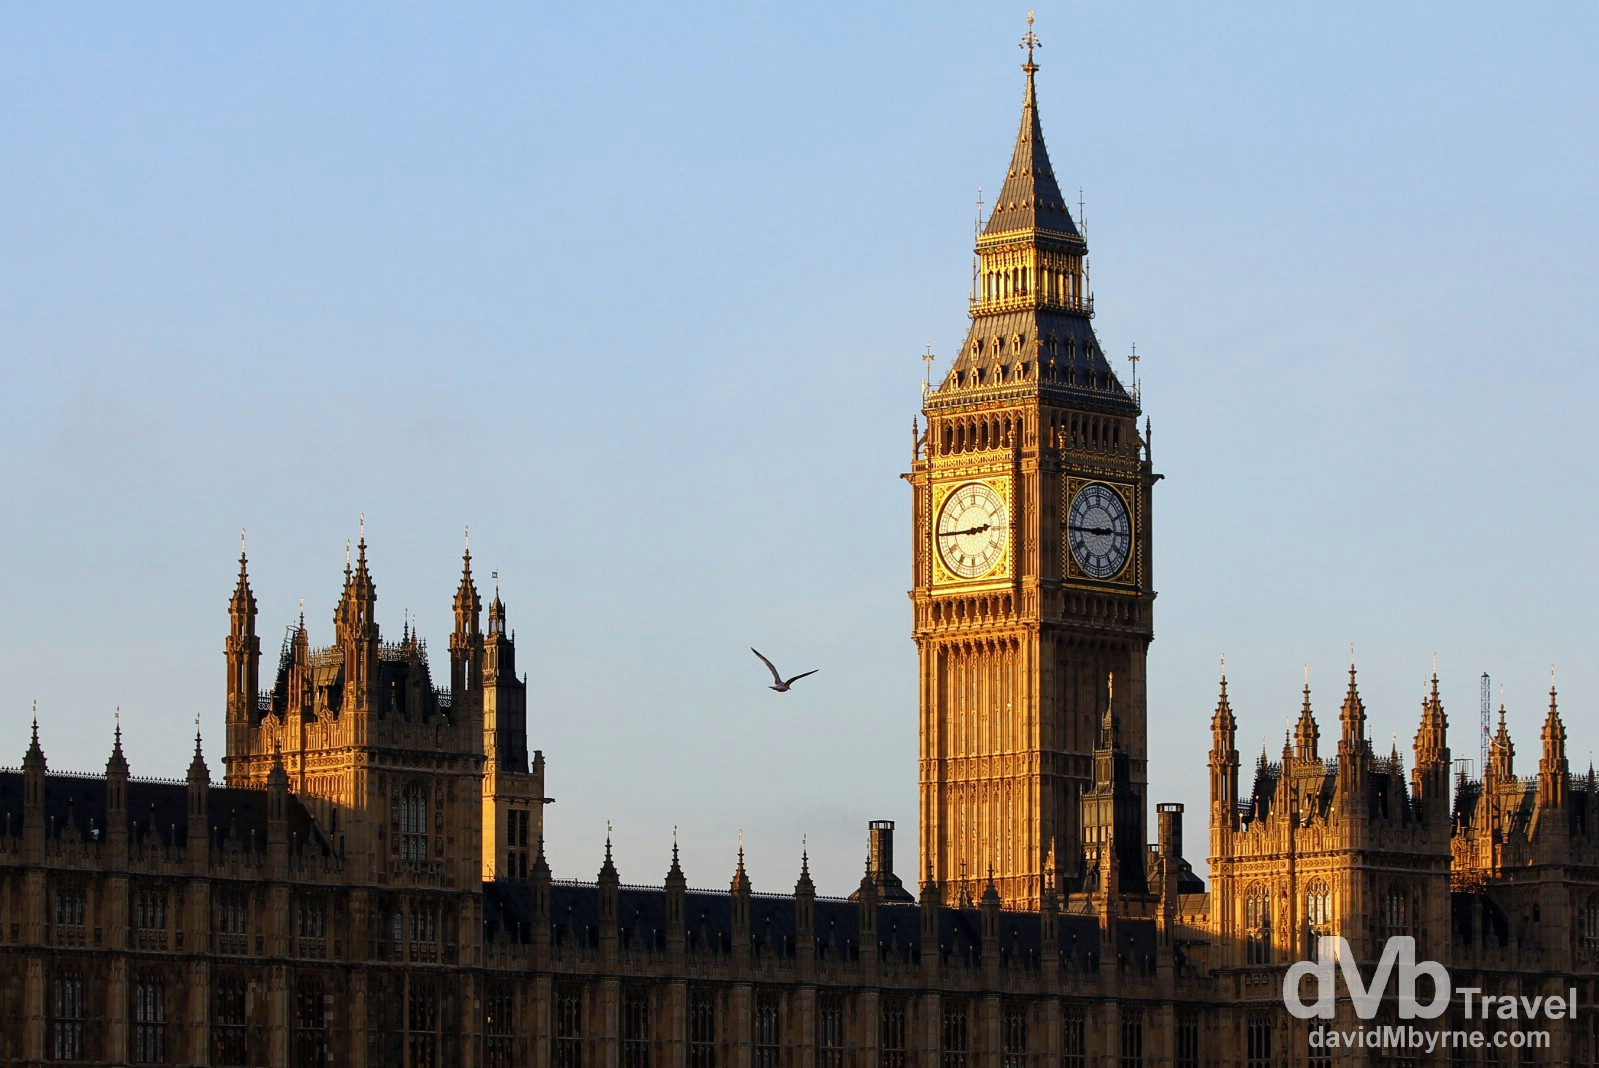 Big Ben & the Houses of Parliament in London, England. December 8th 2012.